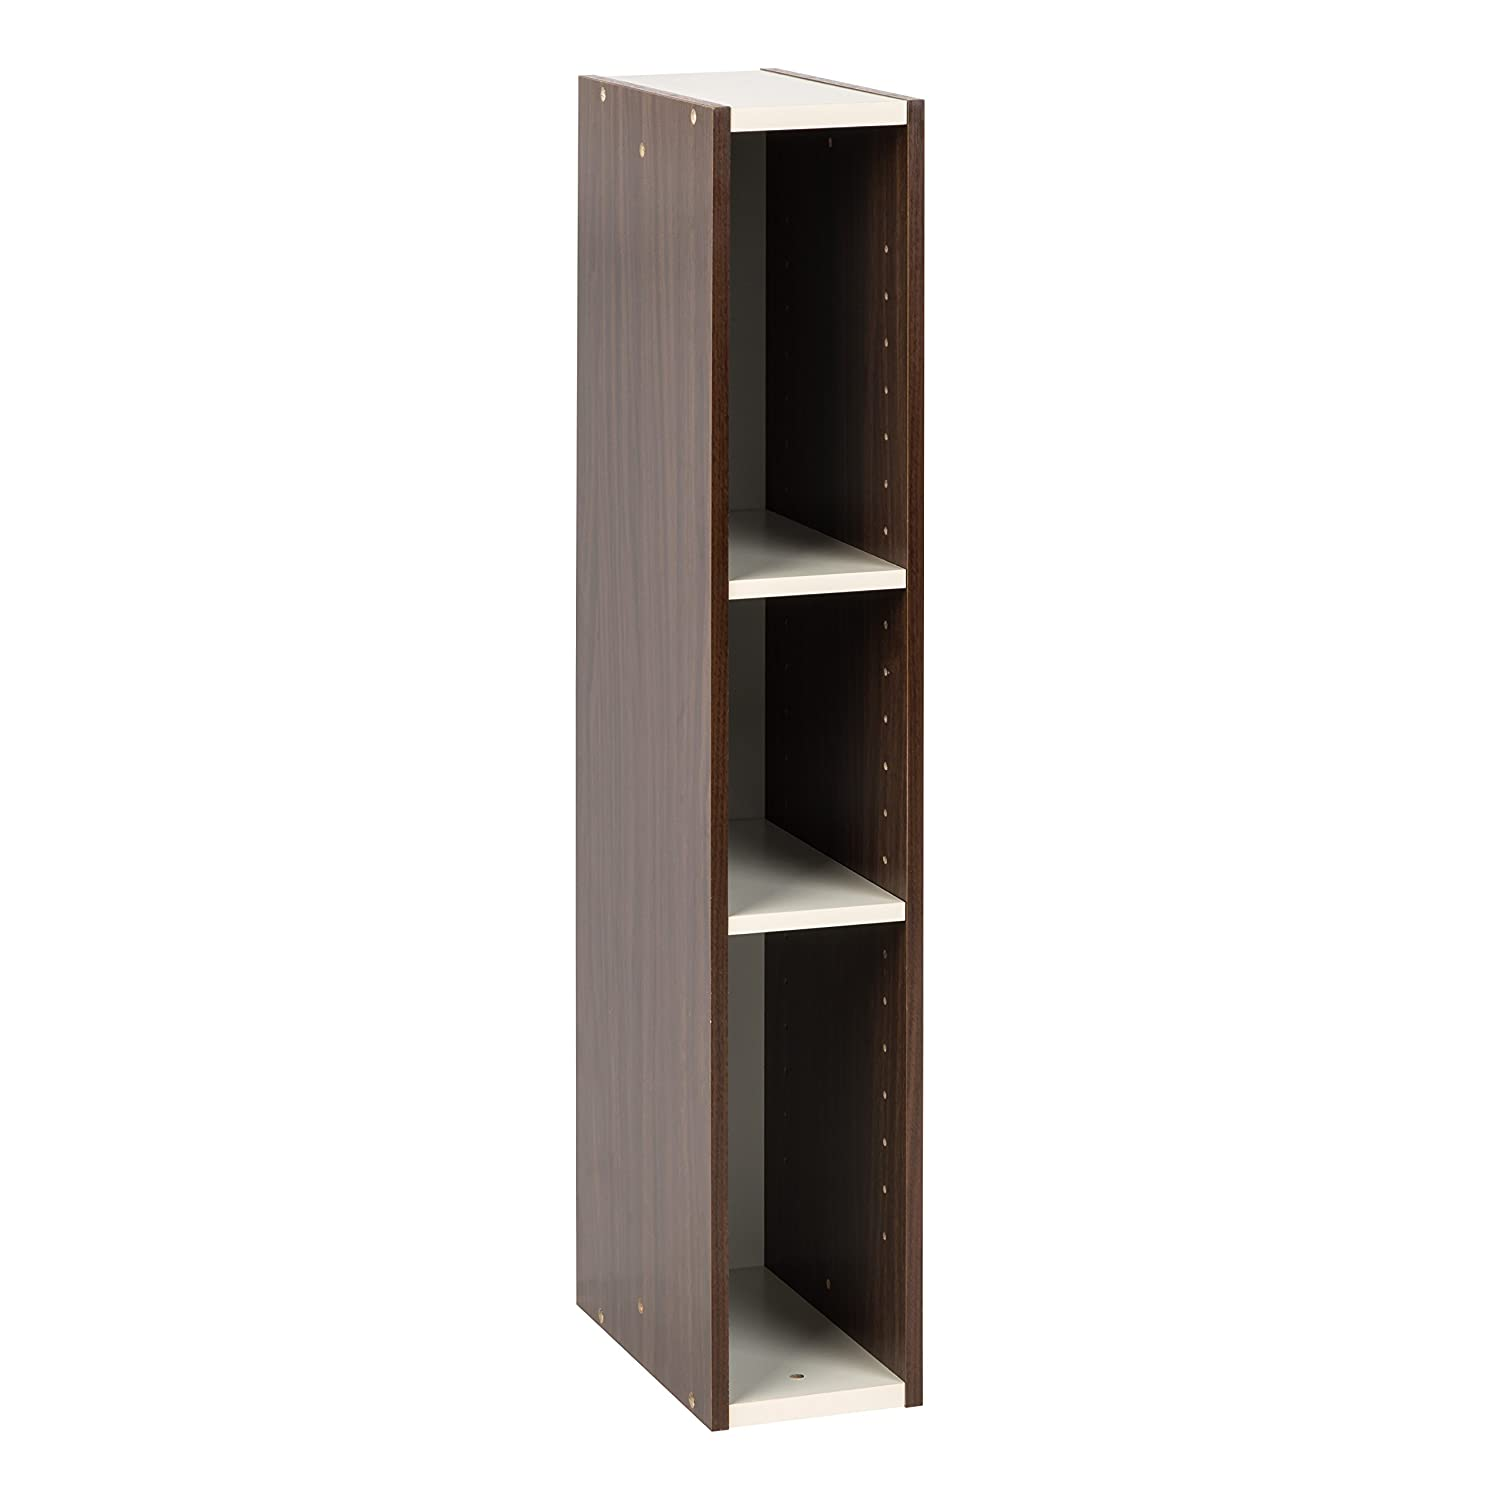 "IRIS USA, UB-9015, Slim Space Saving Shelf with Adjustable Shelves, 6 x 34"", Walnut Brown, 1 Pack"